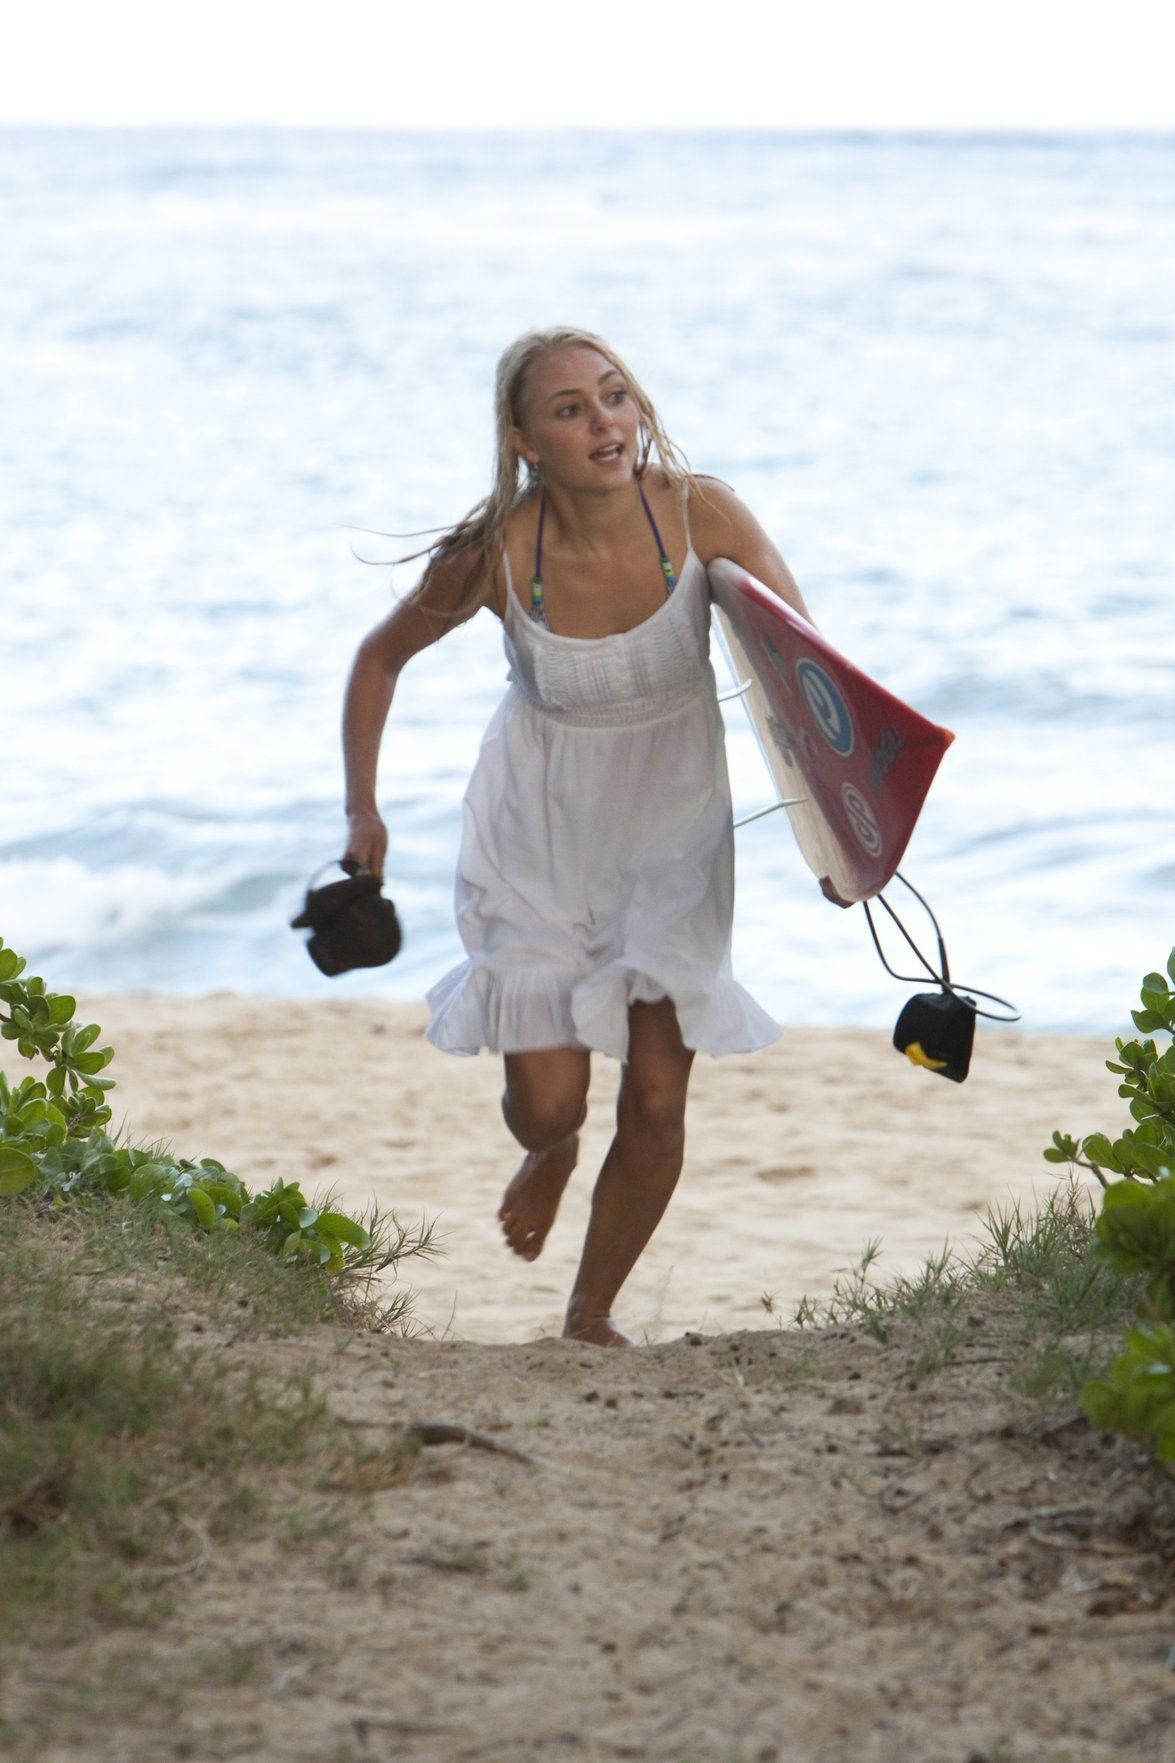 Soul Surfer Waters Down Shark Attack Features Entertainment Herald Dispatch Com